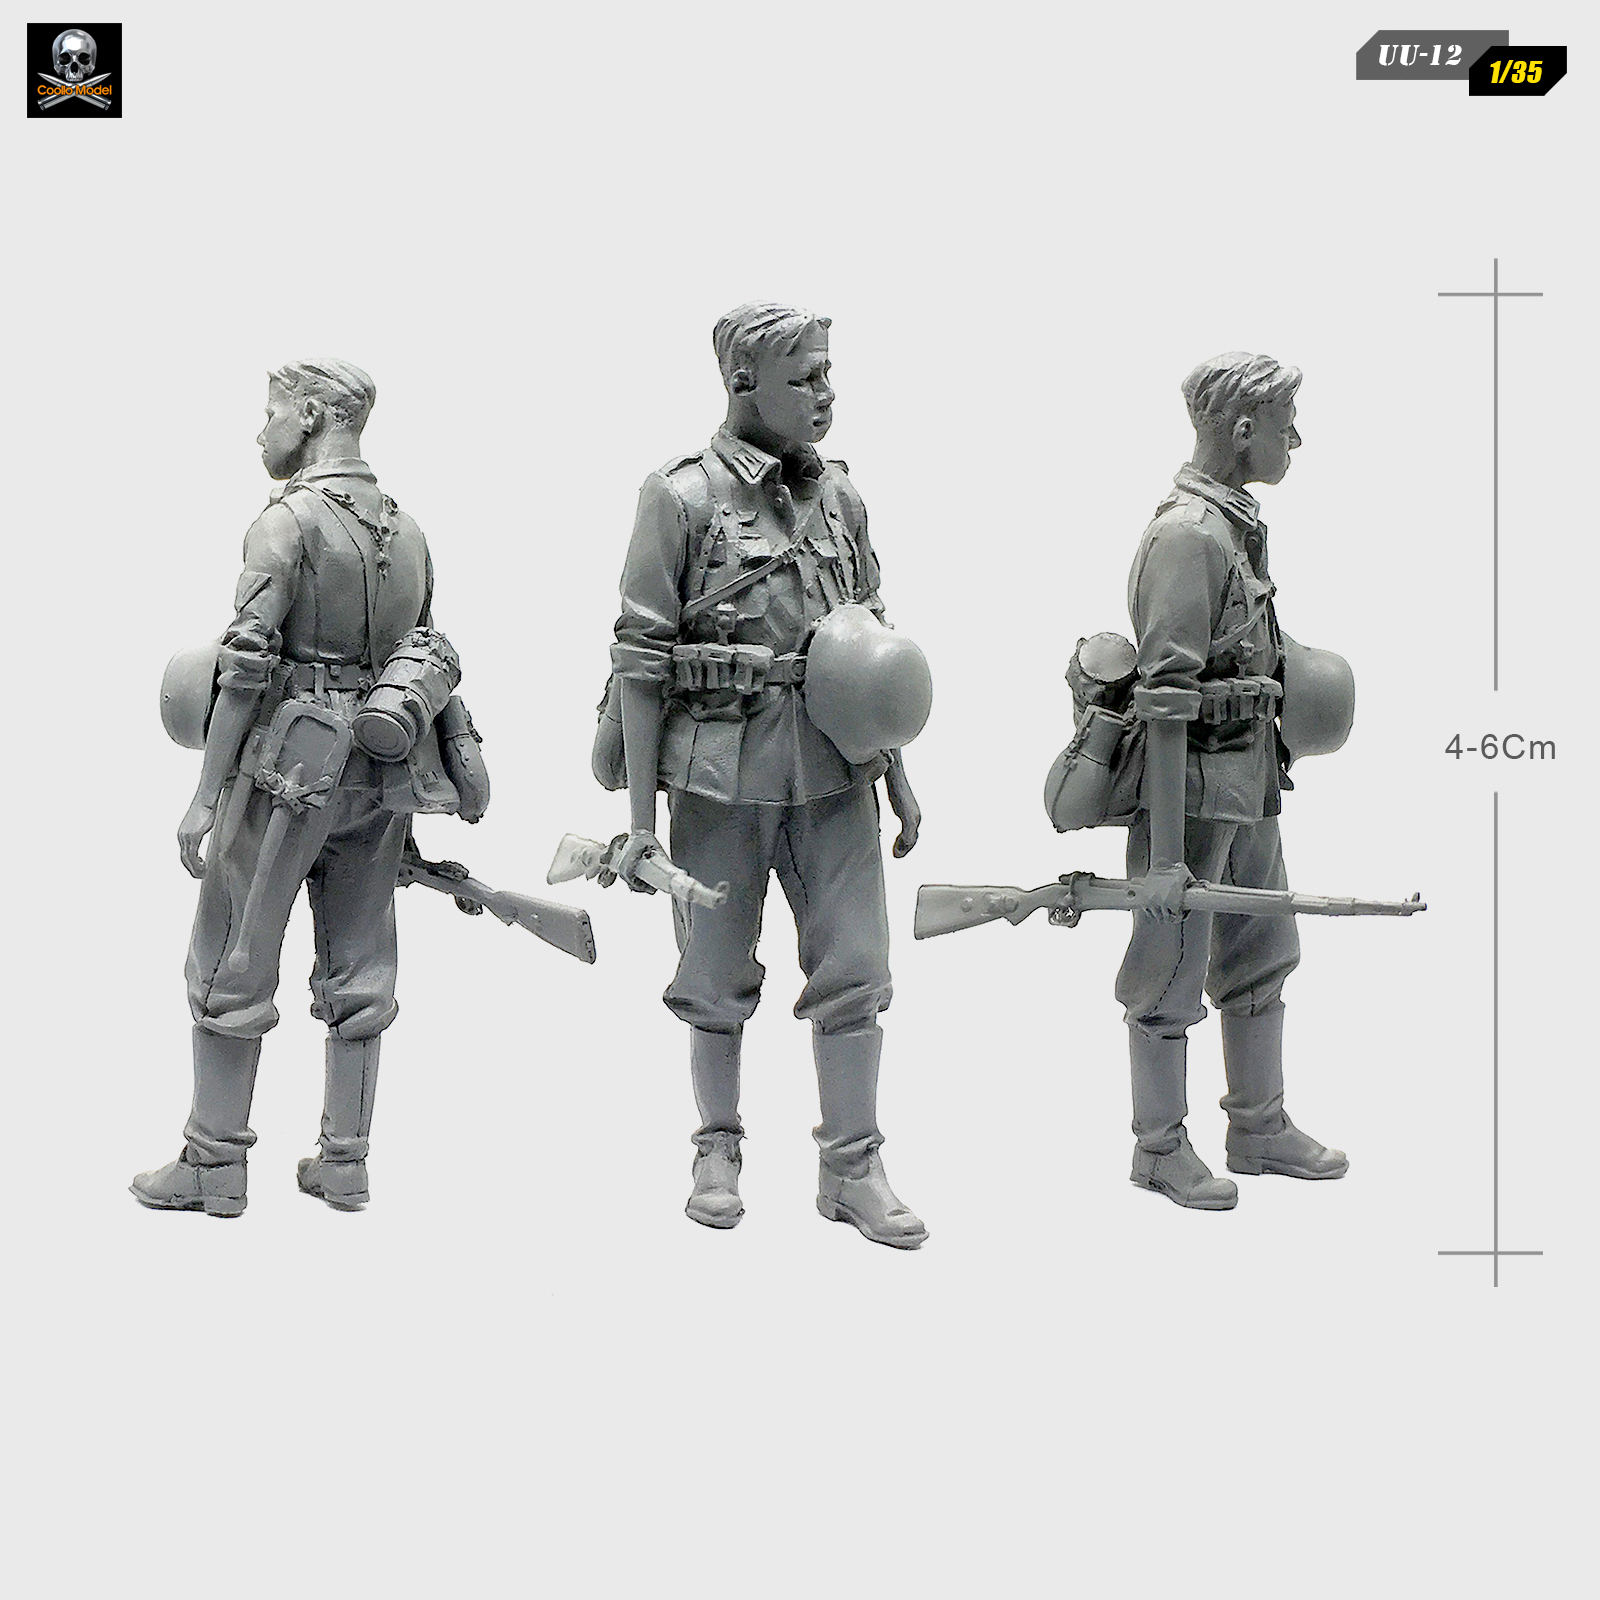 1/35 Resin Kits Soldier Standing Posture Assembling Model  Self-assembled UU-12